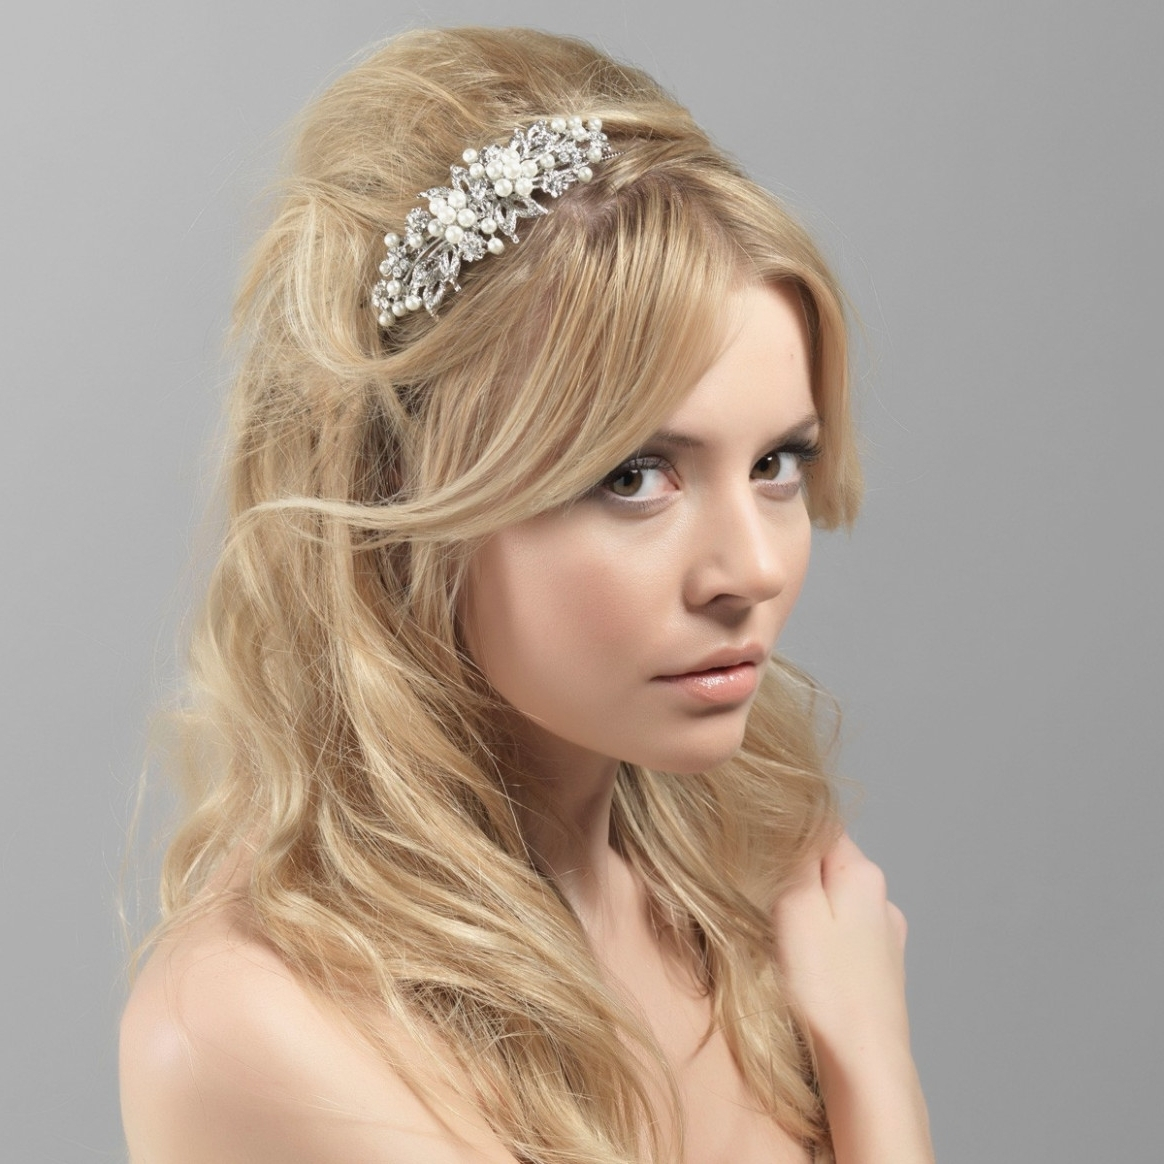 Vintage Pearl Side Tiara – Wedding Hair Accessory – Glitzy Secrets Regarding Famous Wedding Hairstyles With Tiara (View 9 of 15)